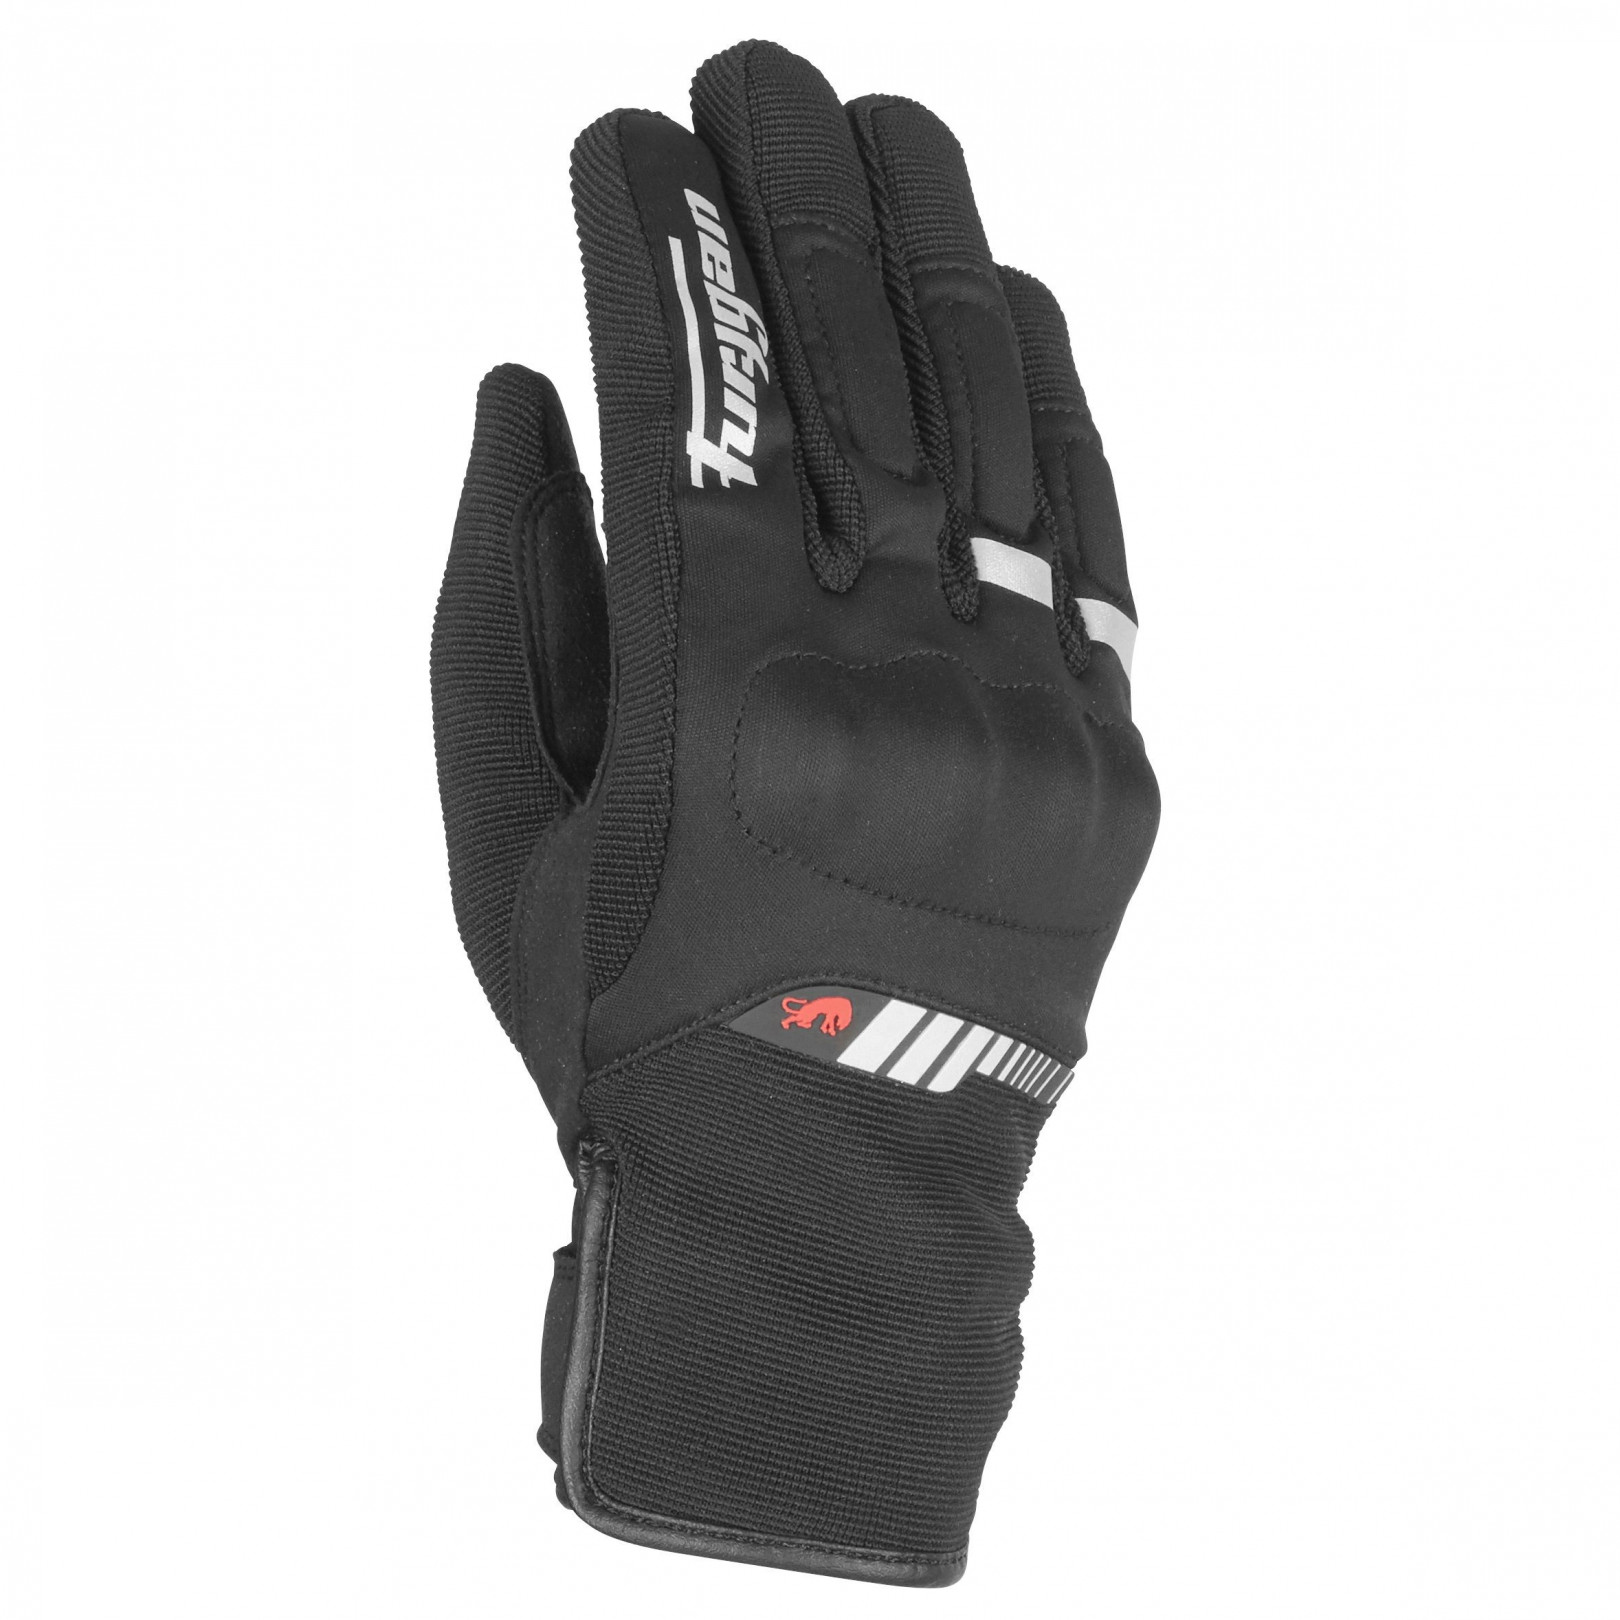 Gants Furygan Jet All Seasons KID Noir et Blanc